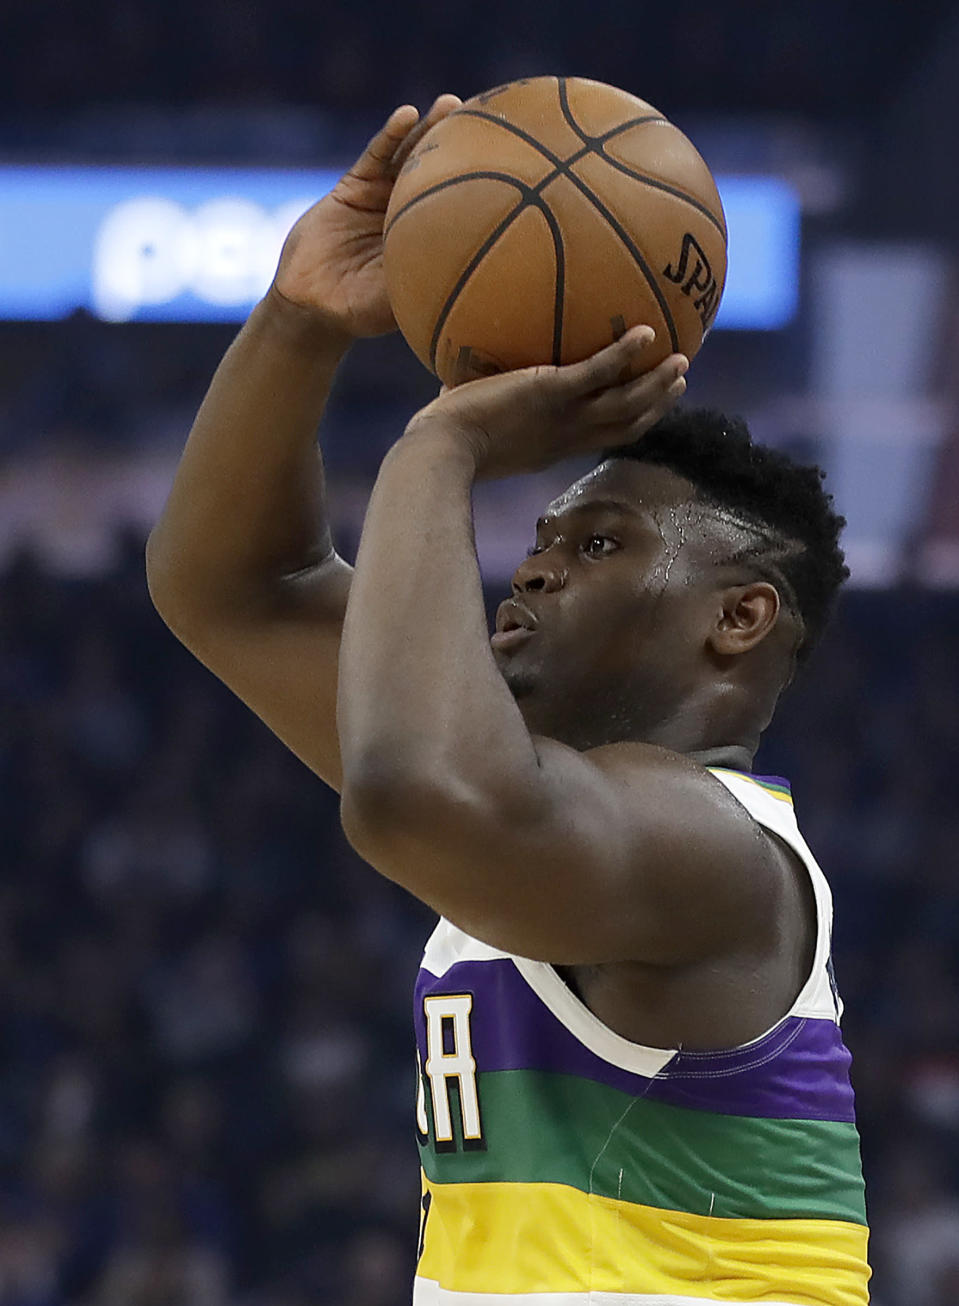 New Orleans Pelicans' Zion Williamson shoots against the Golden State Warriors in the first half of an NBA basketball game Sunday, Feb. 23, 2020, in San Francisco. (AP Photo/Ben Margot)